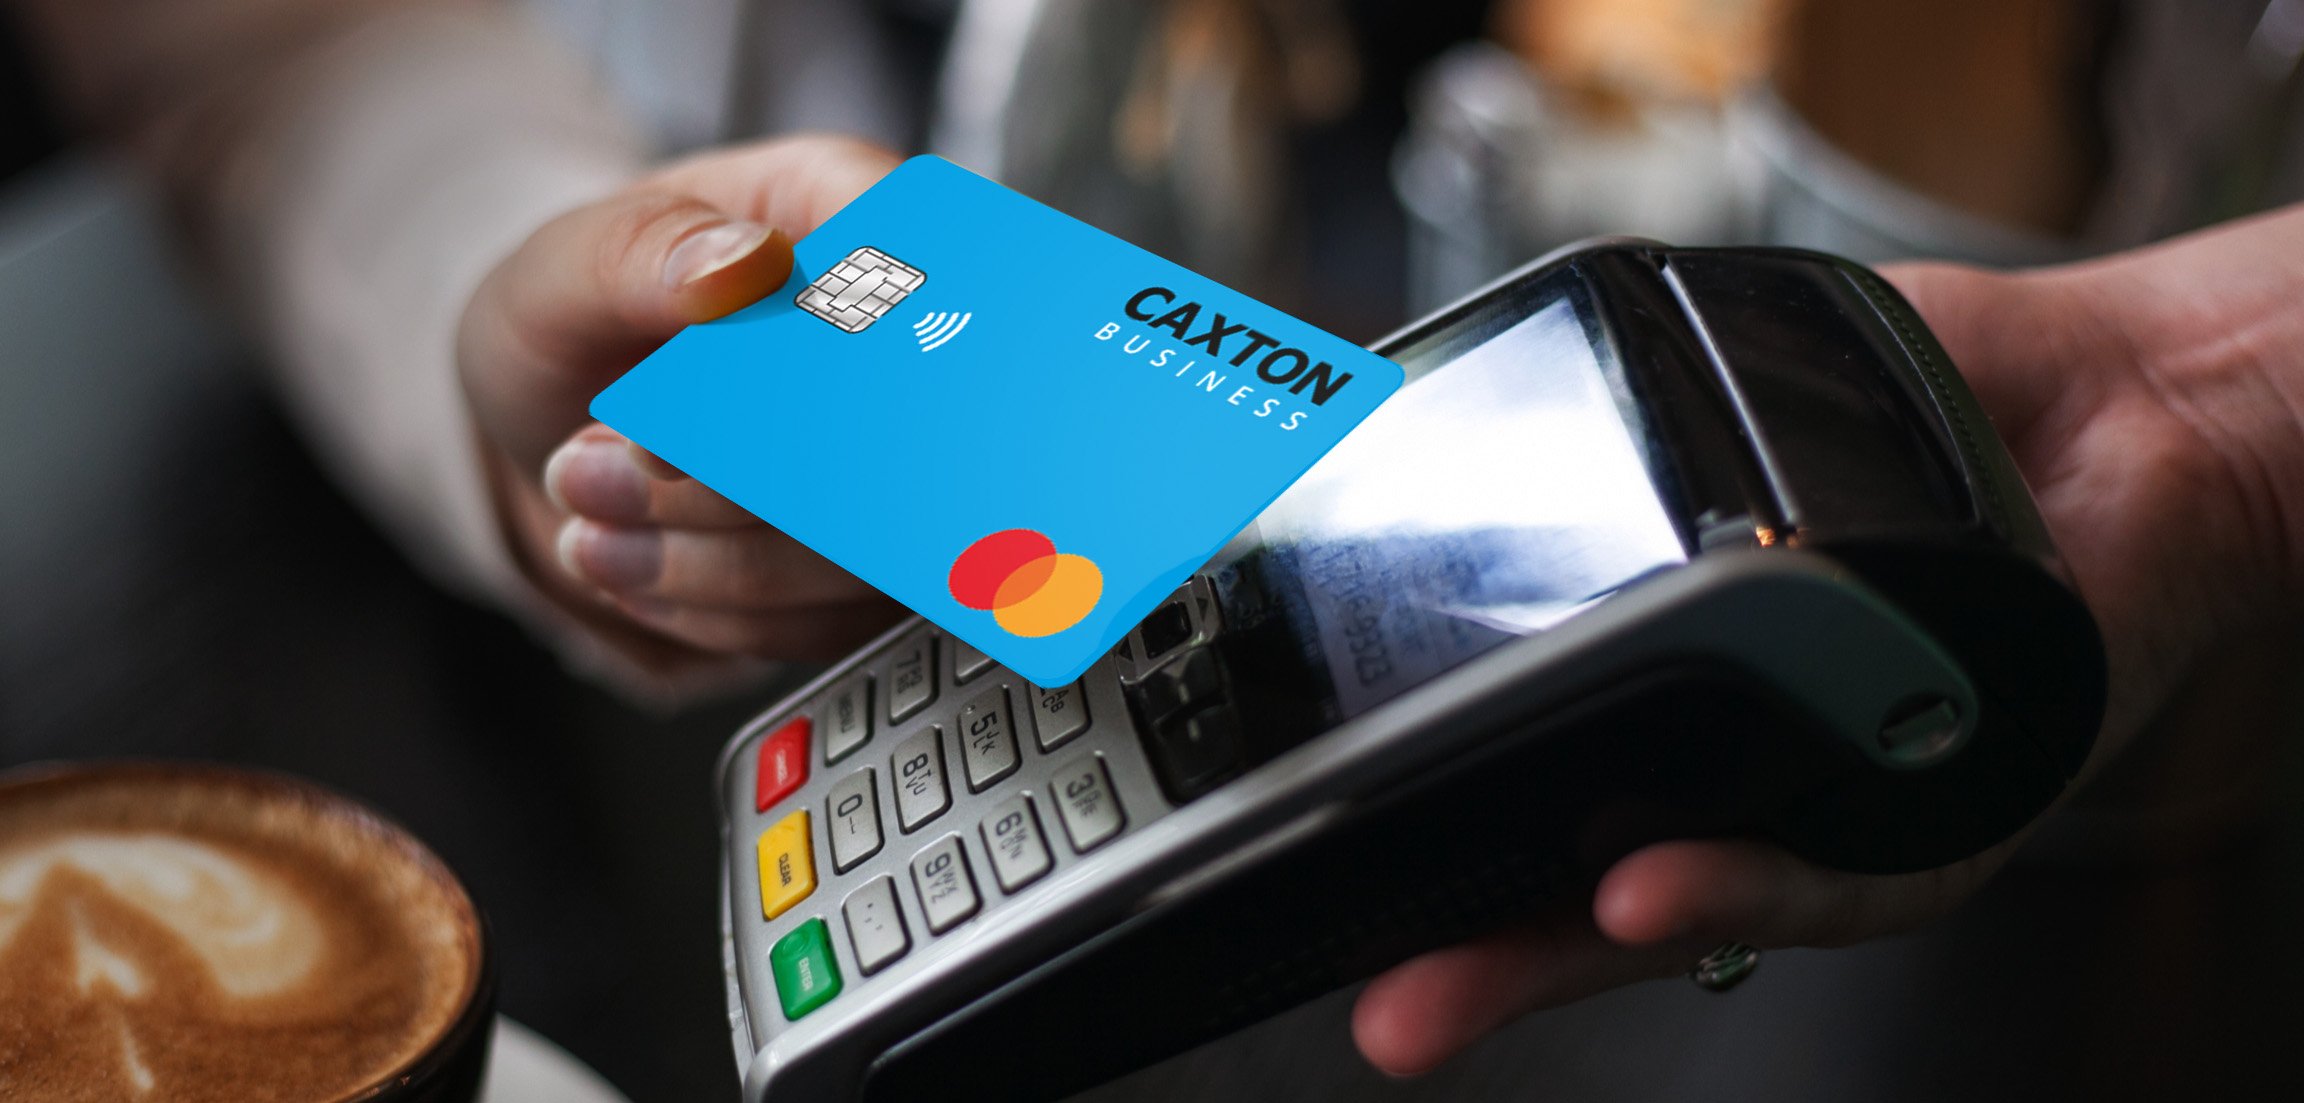 allpay.cards Designs & Manufactures Caxton's New Sterling Card for Corporate Expense Management